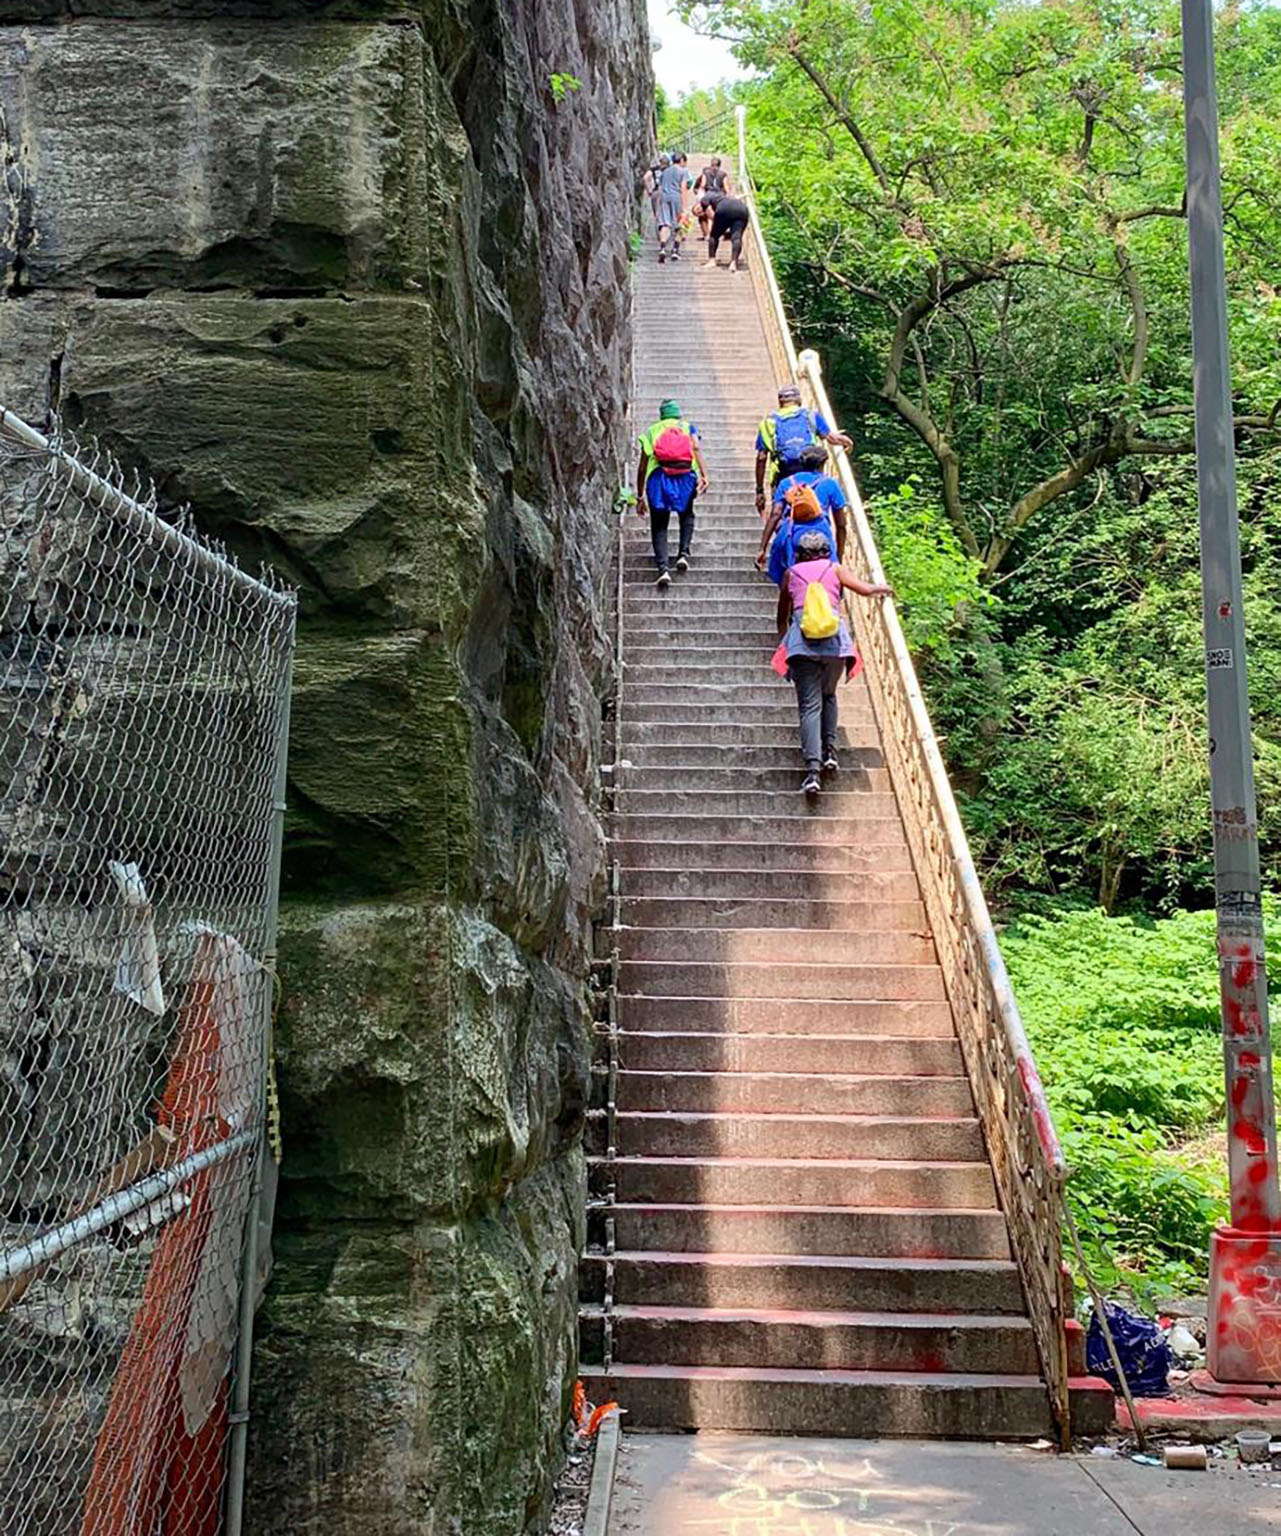 Hikers climbing stairs in NYC park